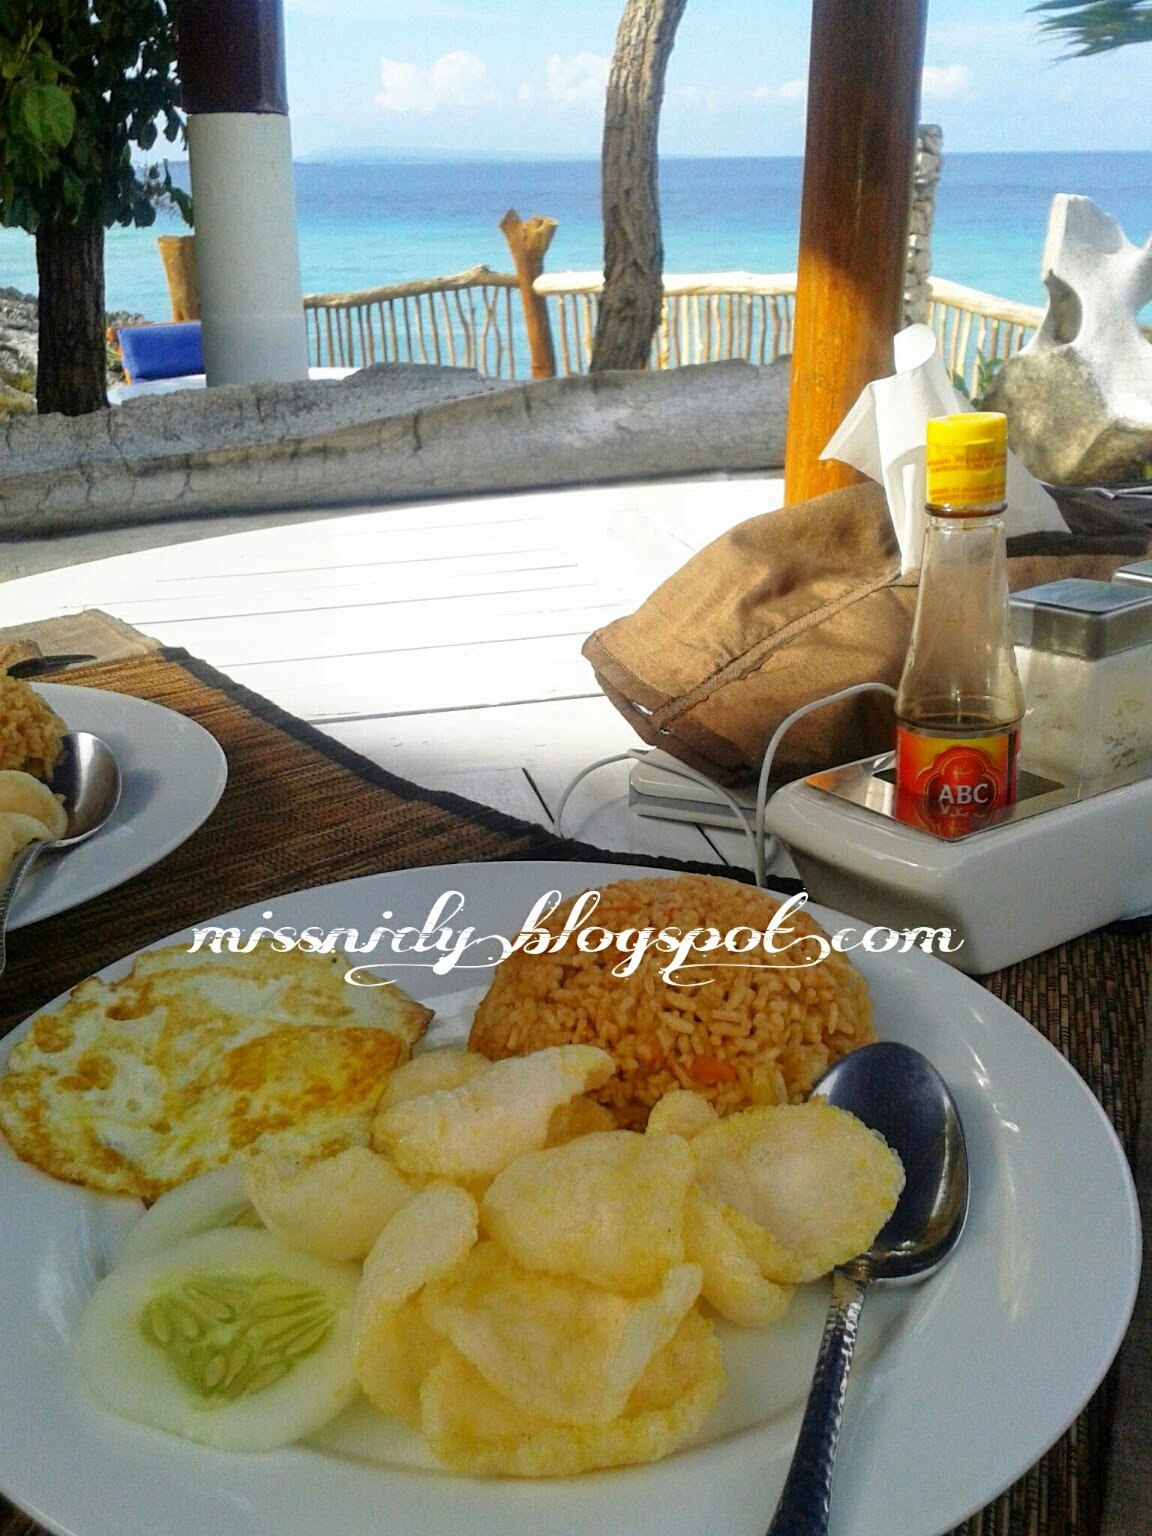 sarapan di amatoa resort